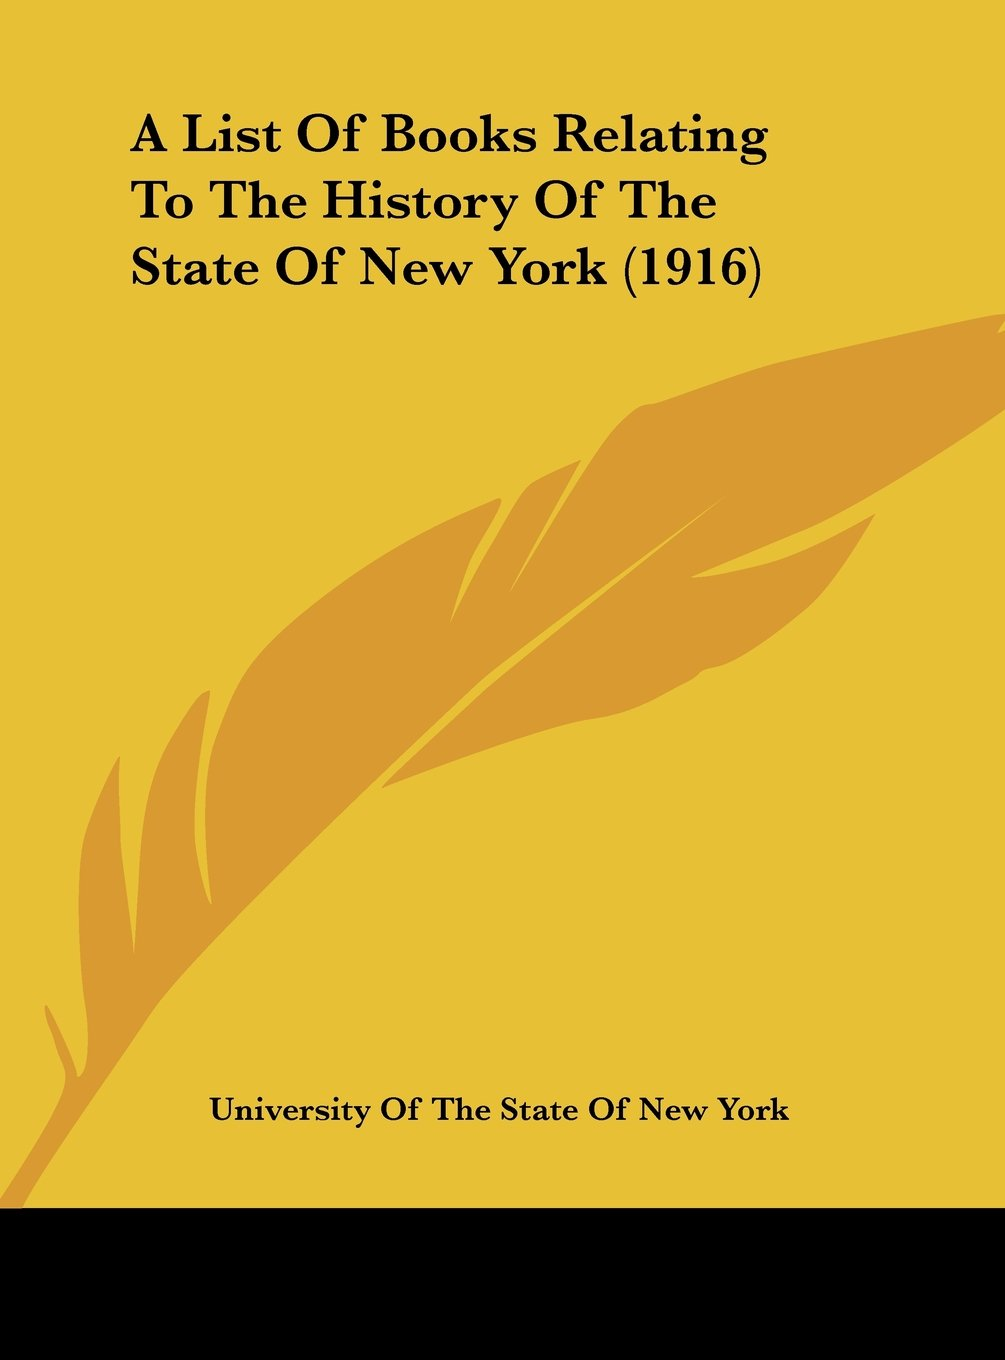 A List Of Books Relating To The History Of The State Of New York (1916) pdf